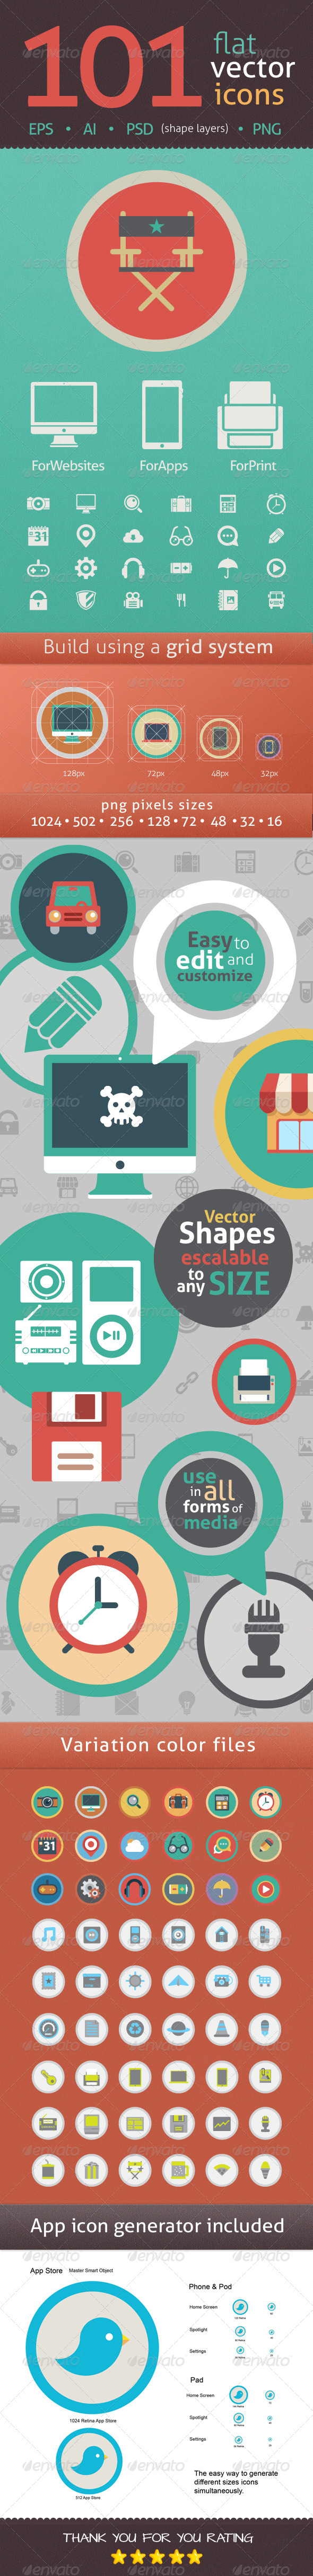 GraphicRiver 101 Flat Icons in Vector Format and Shape Layers 6098200